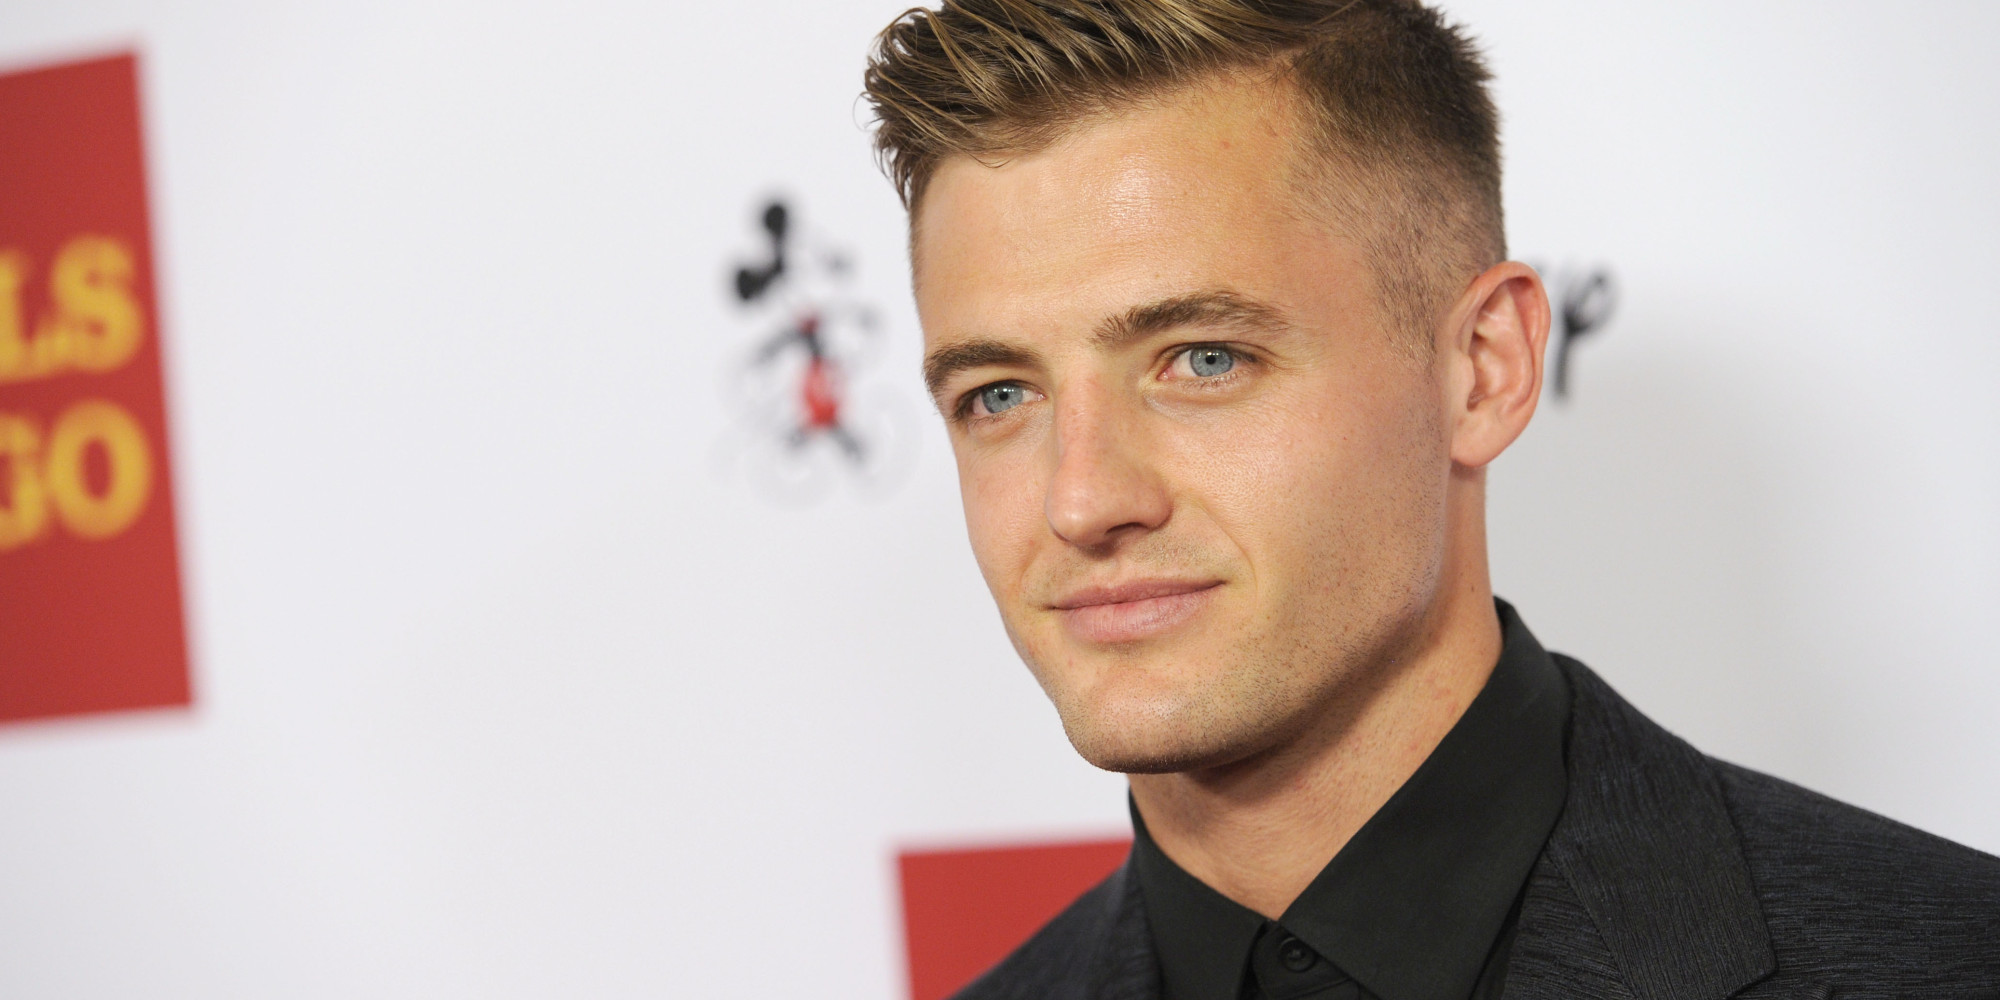 robbie rogers recalls the very first person he came out to